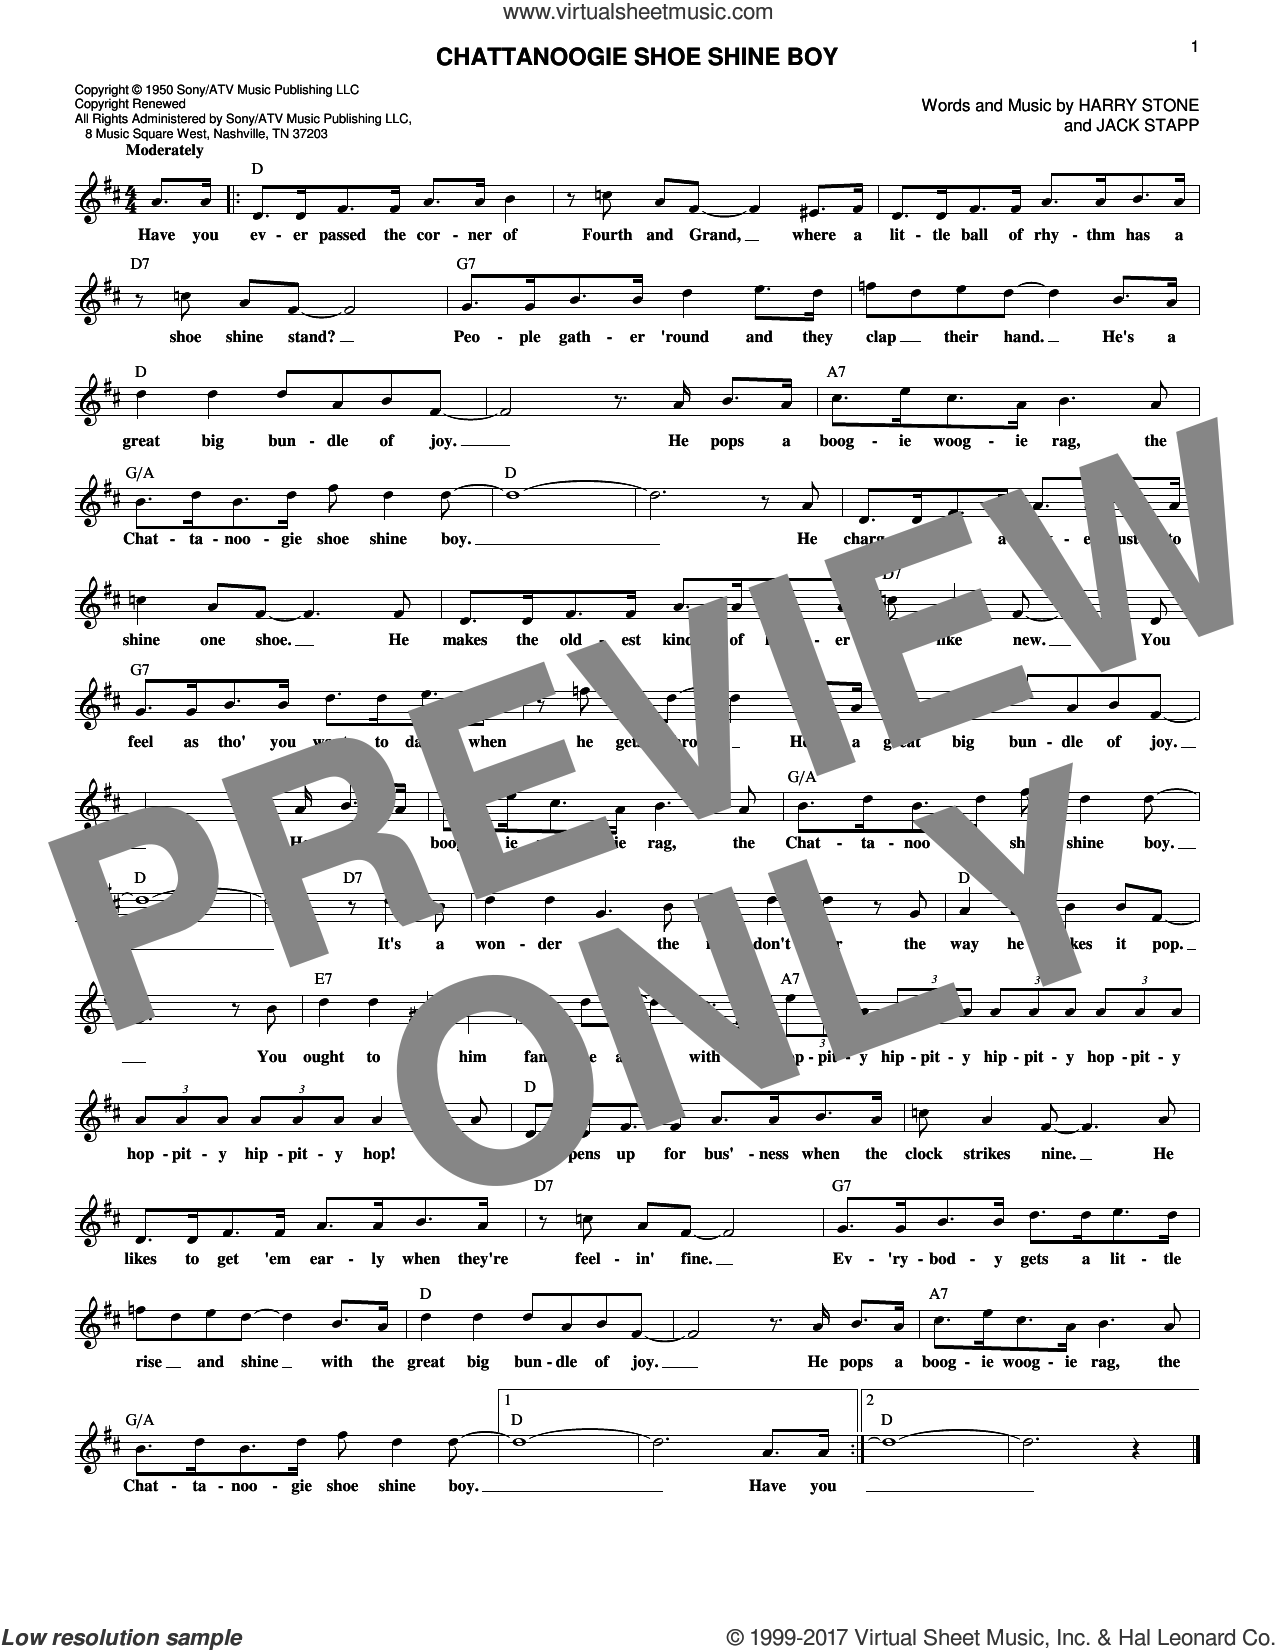 Chattanoogie Shoe Shine Boy sheet music for voice and other instruments (fake book) by Jack Stapp, Red Foley and Harry Stone, intermediate skill level